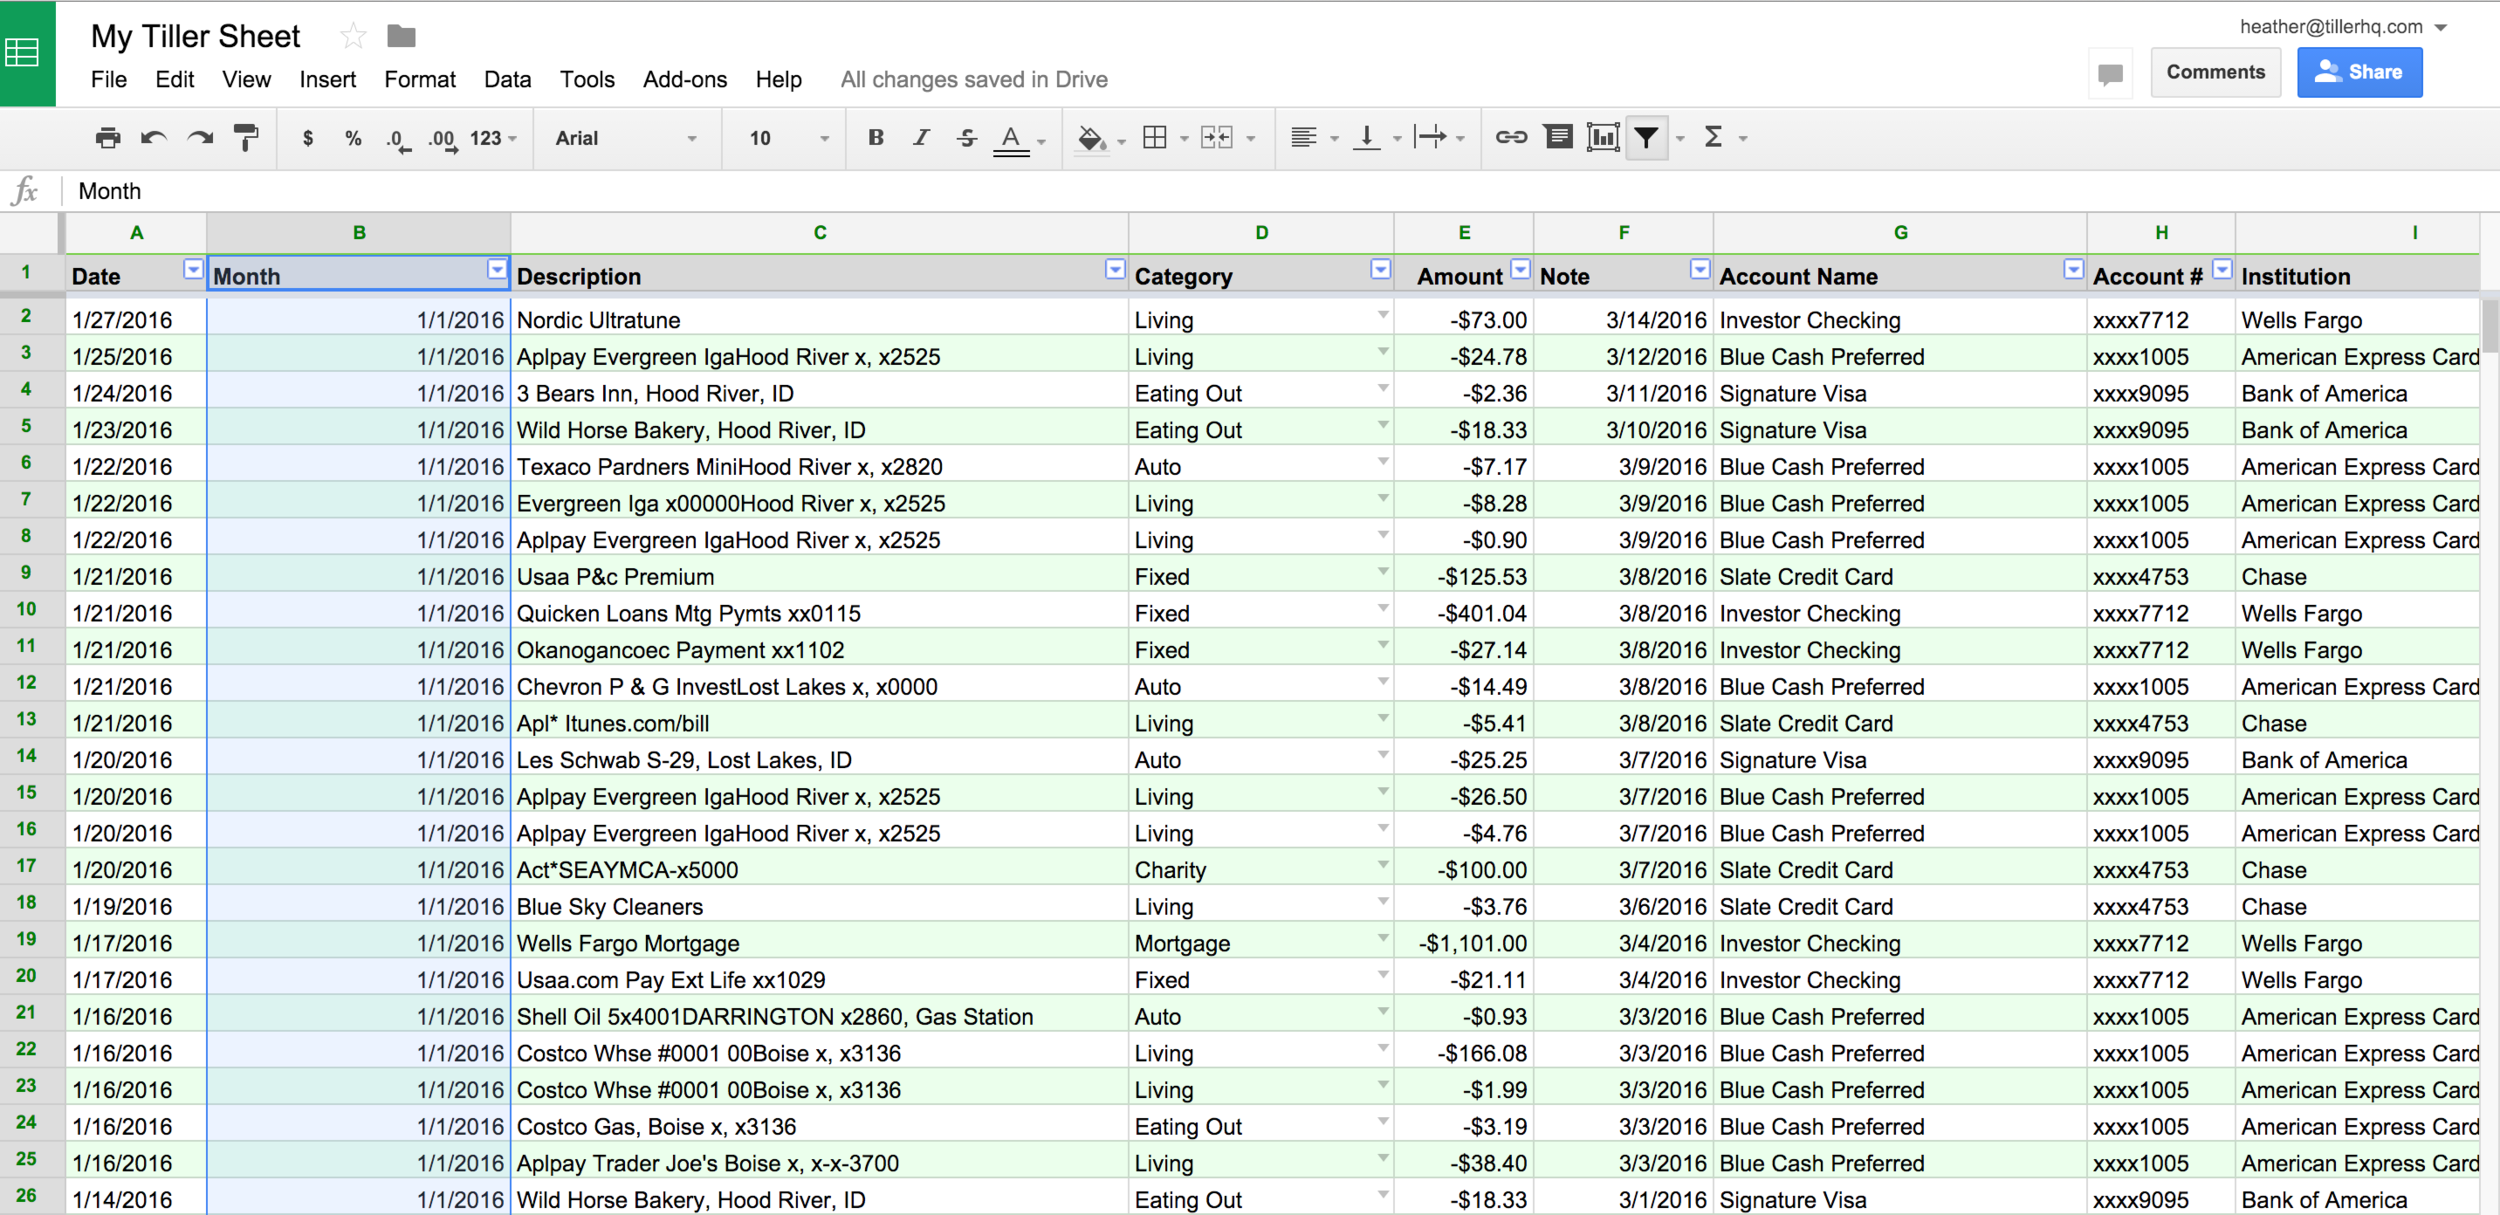 Monthly Spending Pivot Tables in Your Financial Spreadsheet1